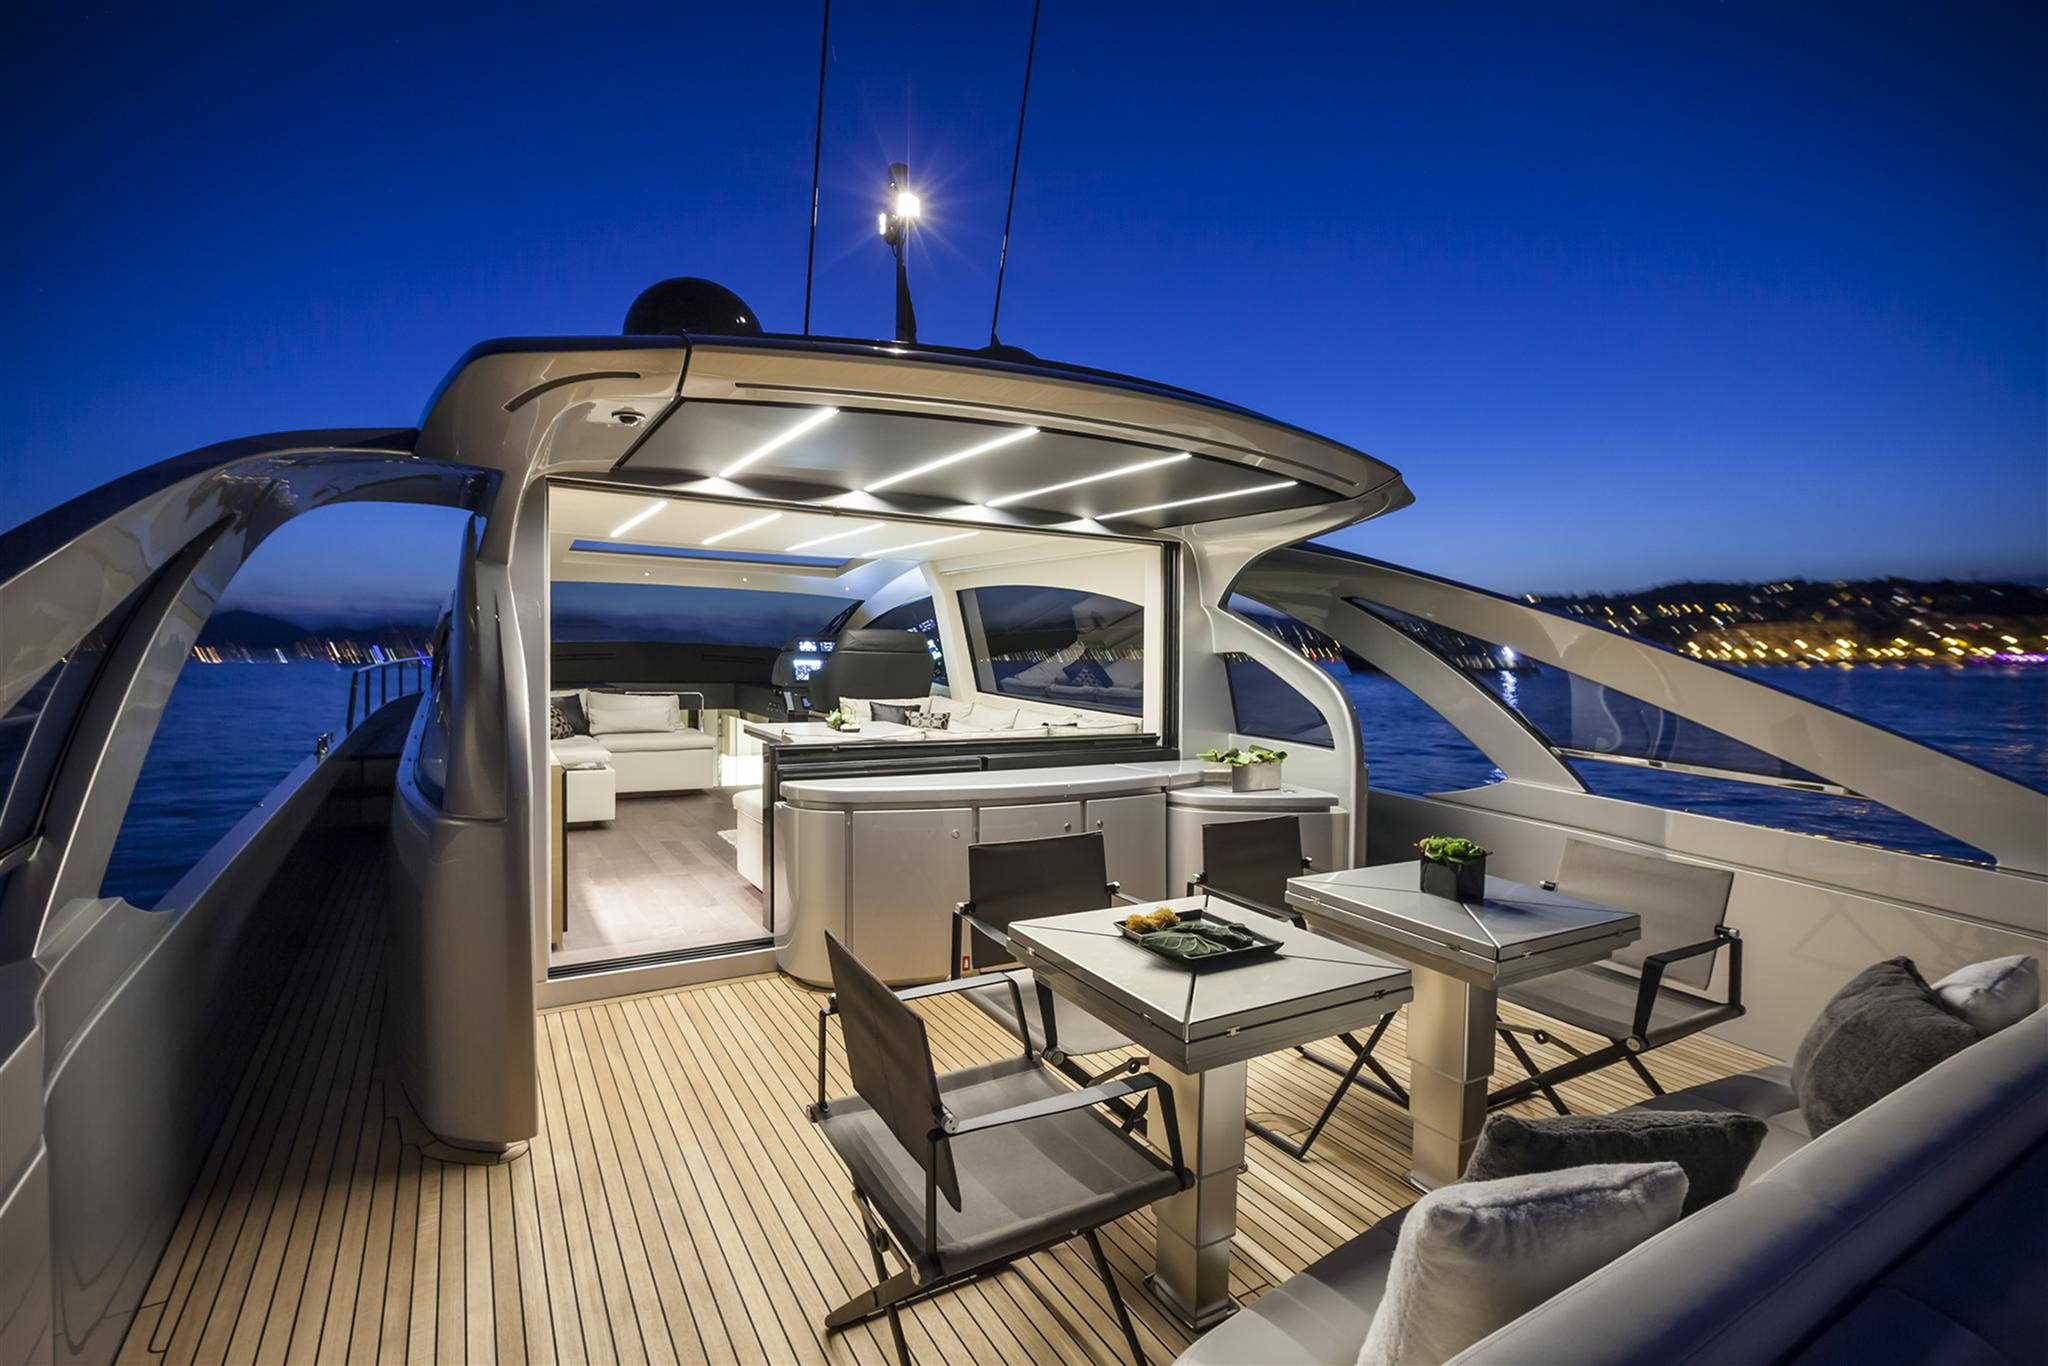 2018 Pershing 70 Yacht Cockpit at night